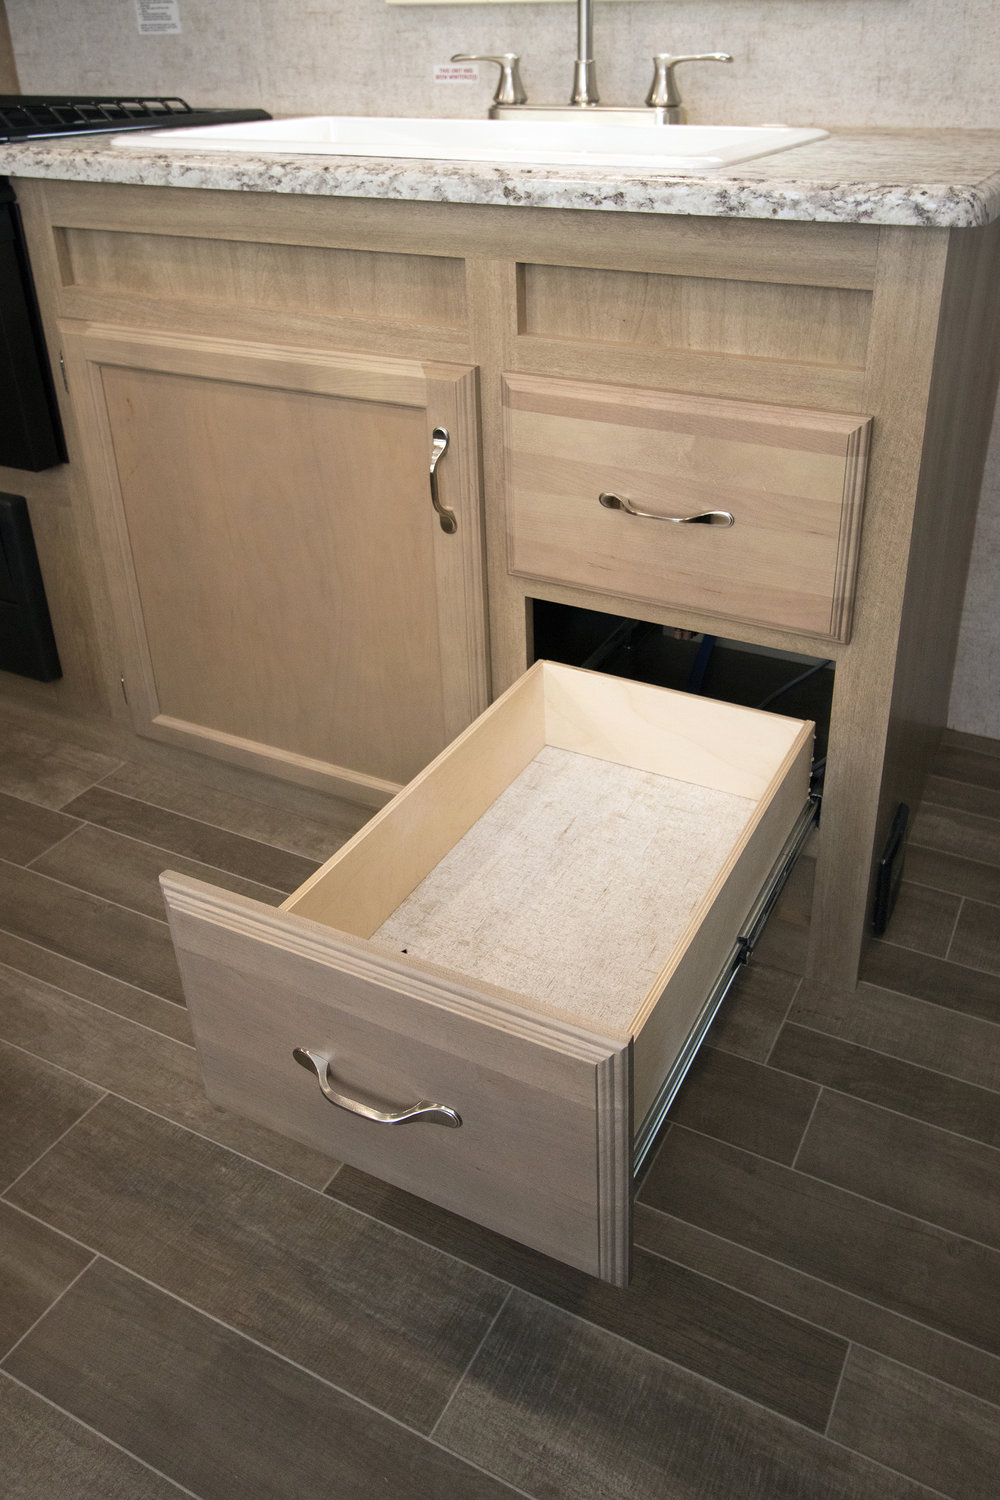 Braxton Creek 23RB Full Extension Drawers